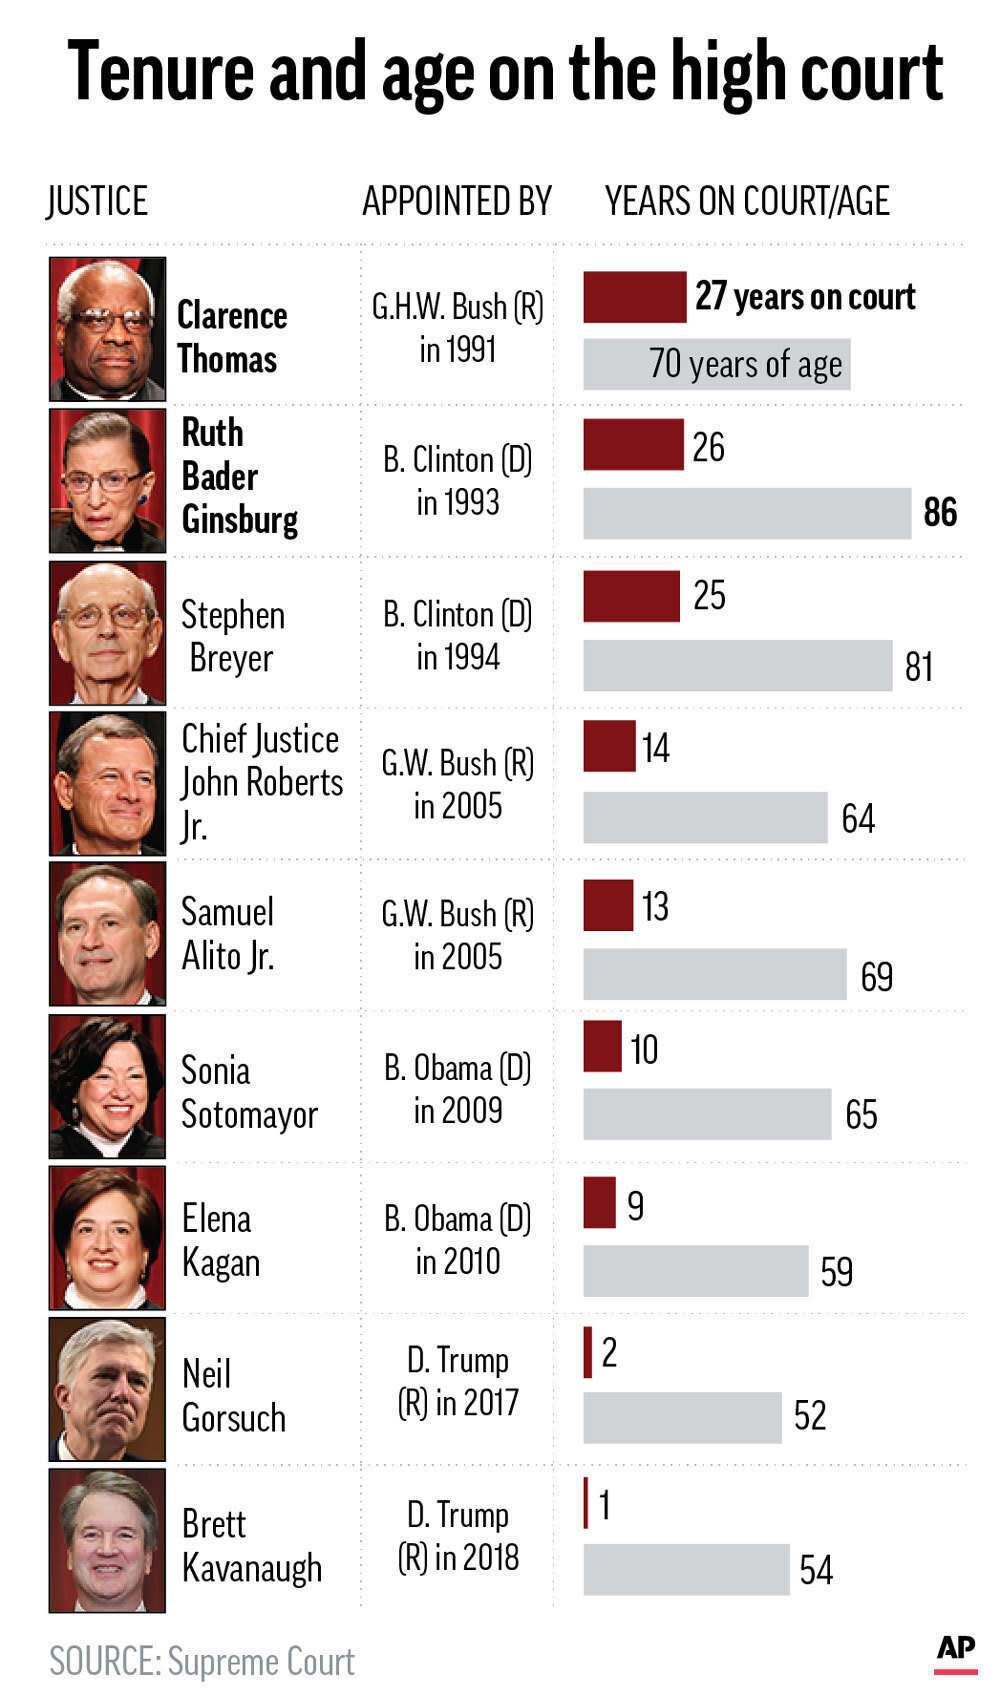 Tenure and ages of current sitting Supreme Court justices.;